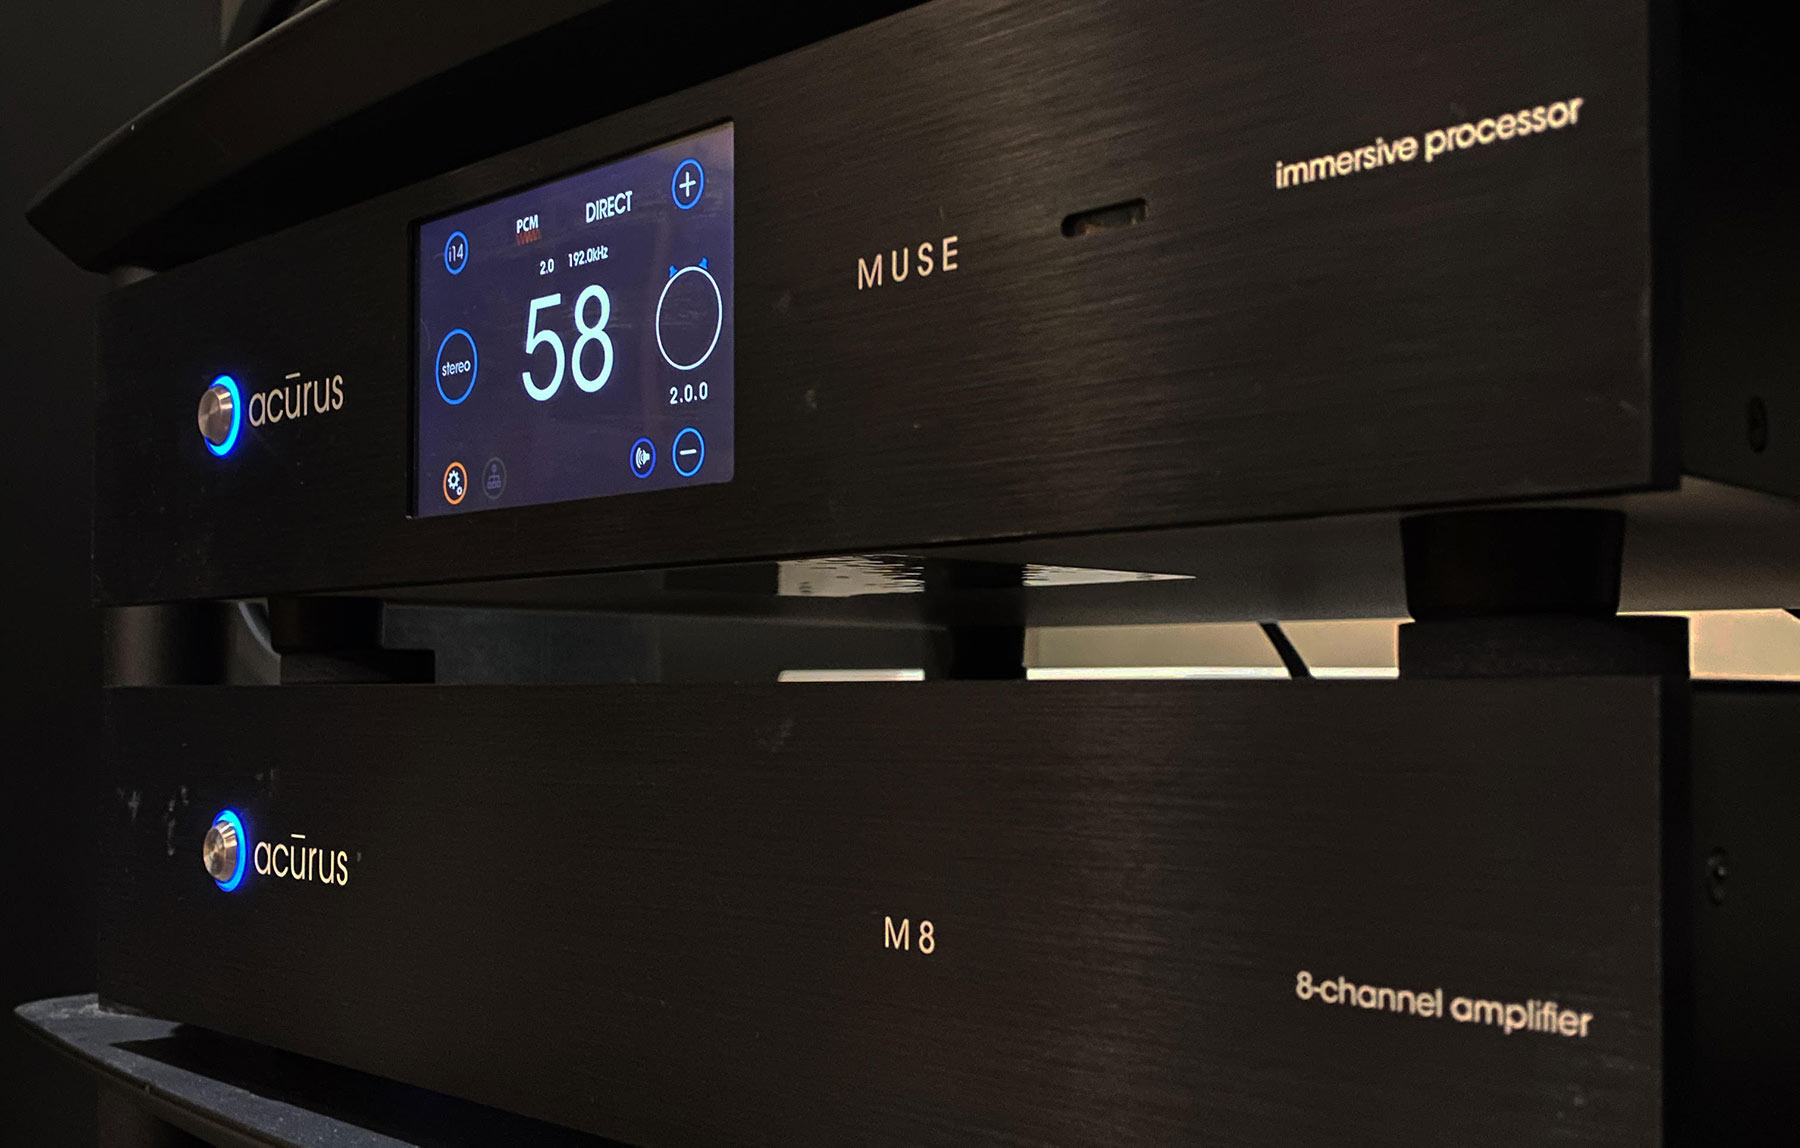 Acurus home theater